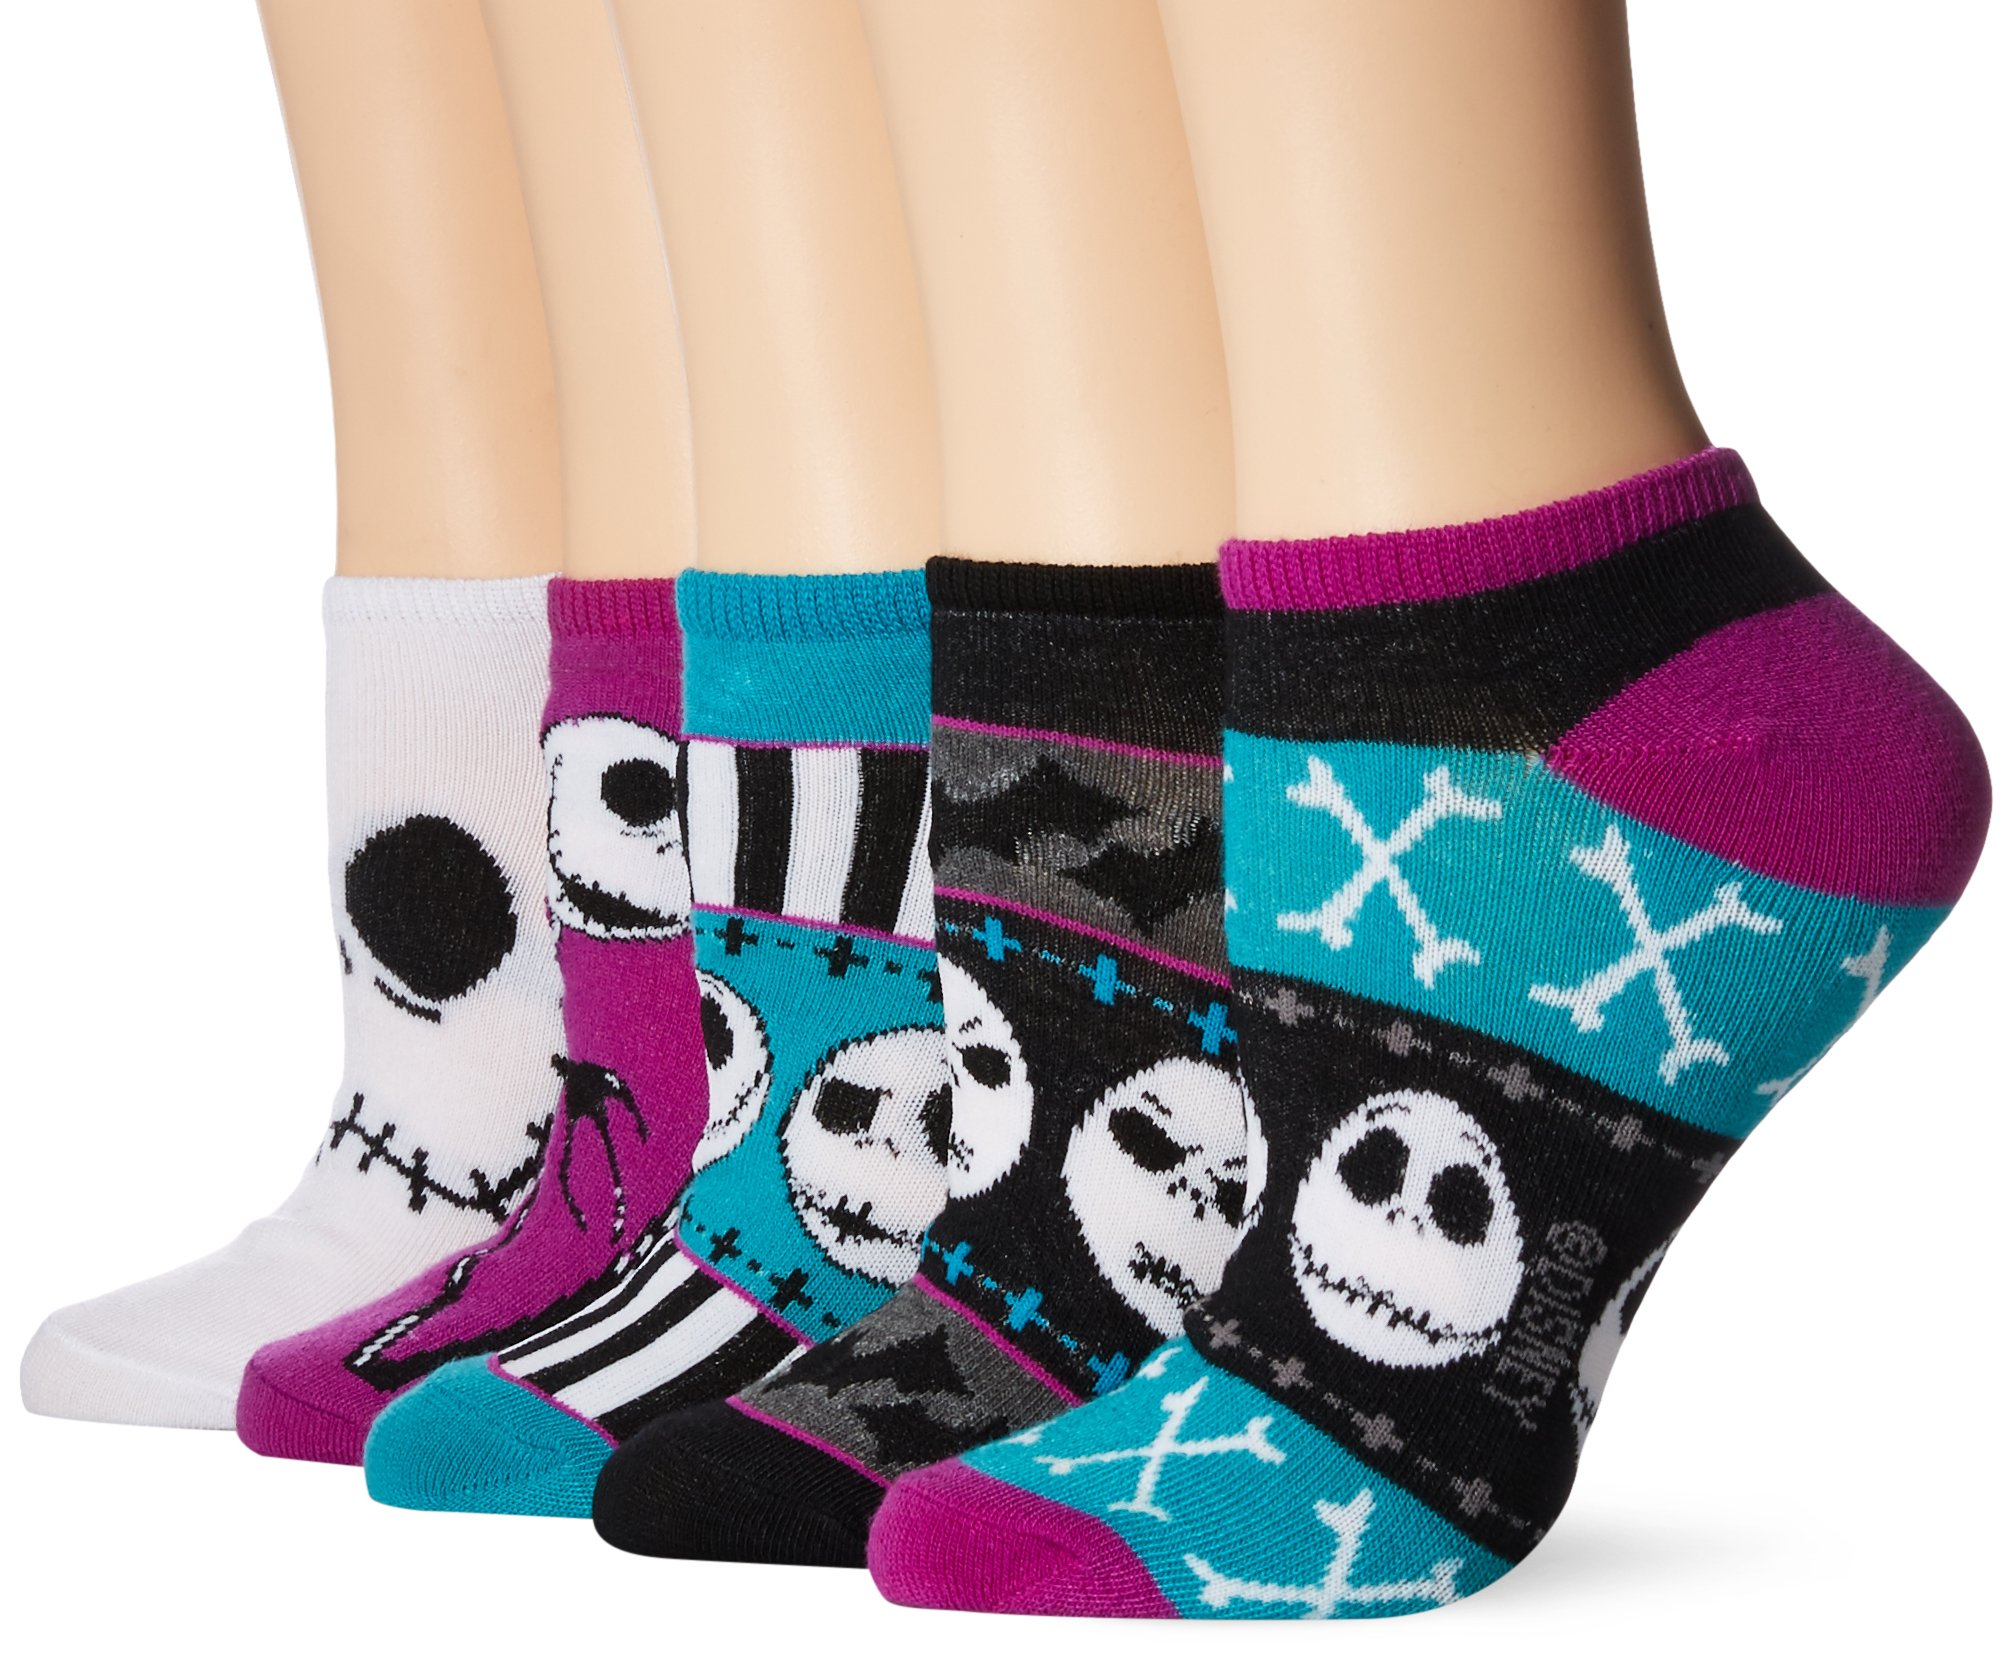 Disney Women's Nightmare Before Christmas 5 Pack No Show, Assorted Purple, fits Sock Size 9-11 fits Shoe Size 4-10.5